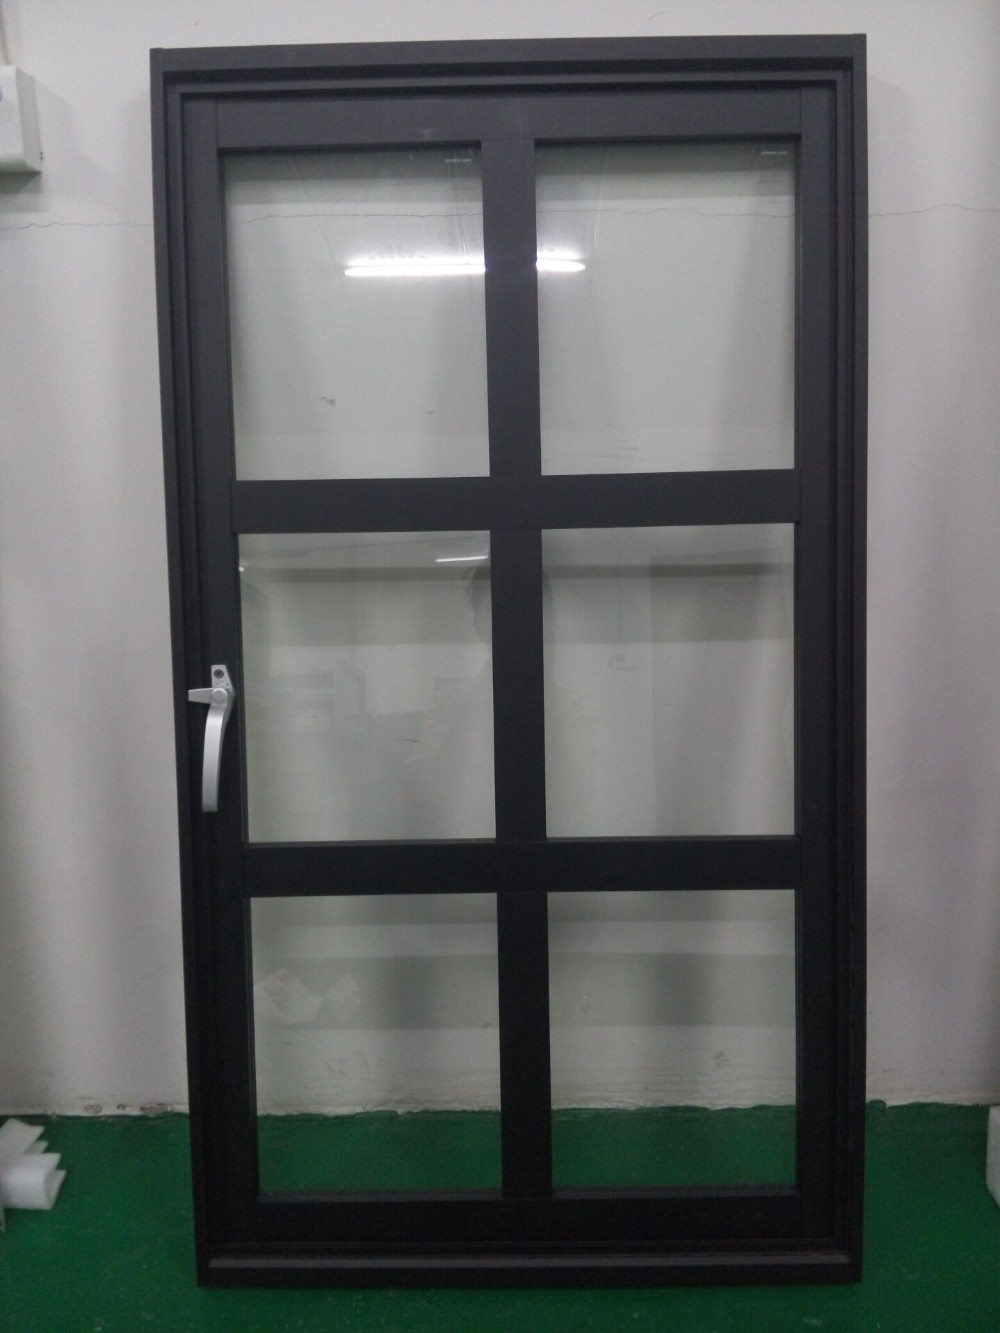 Stainless Steel Casement Windows Buy Stainless Steel